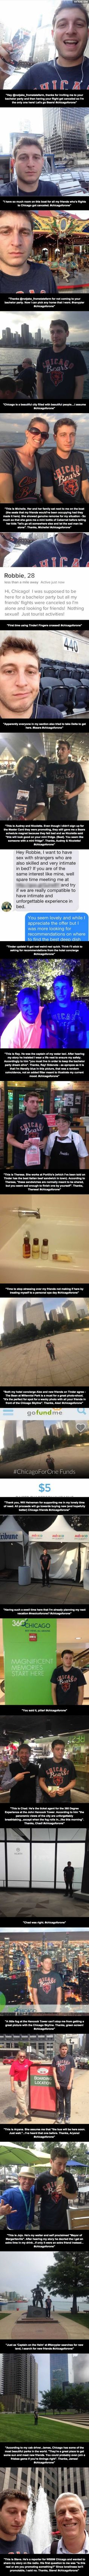 Guy documents his unintended alone time in Chicago - and the results are hilarious.